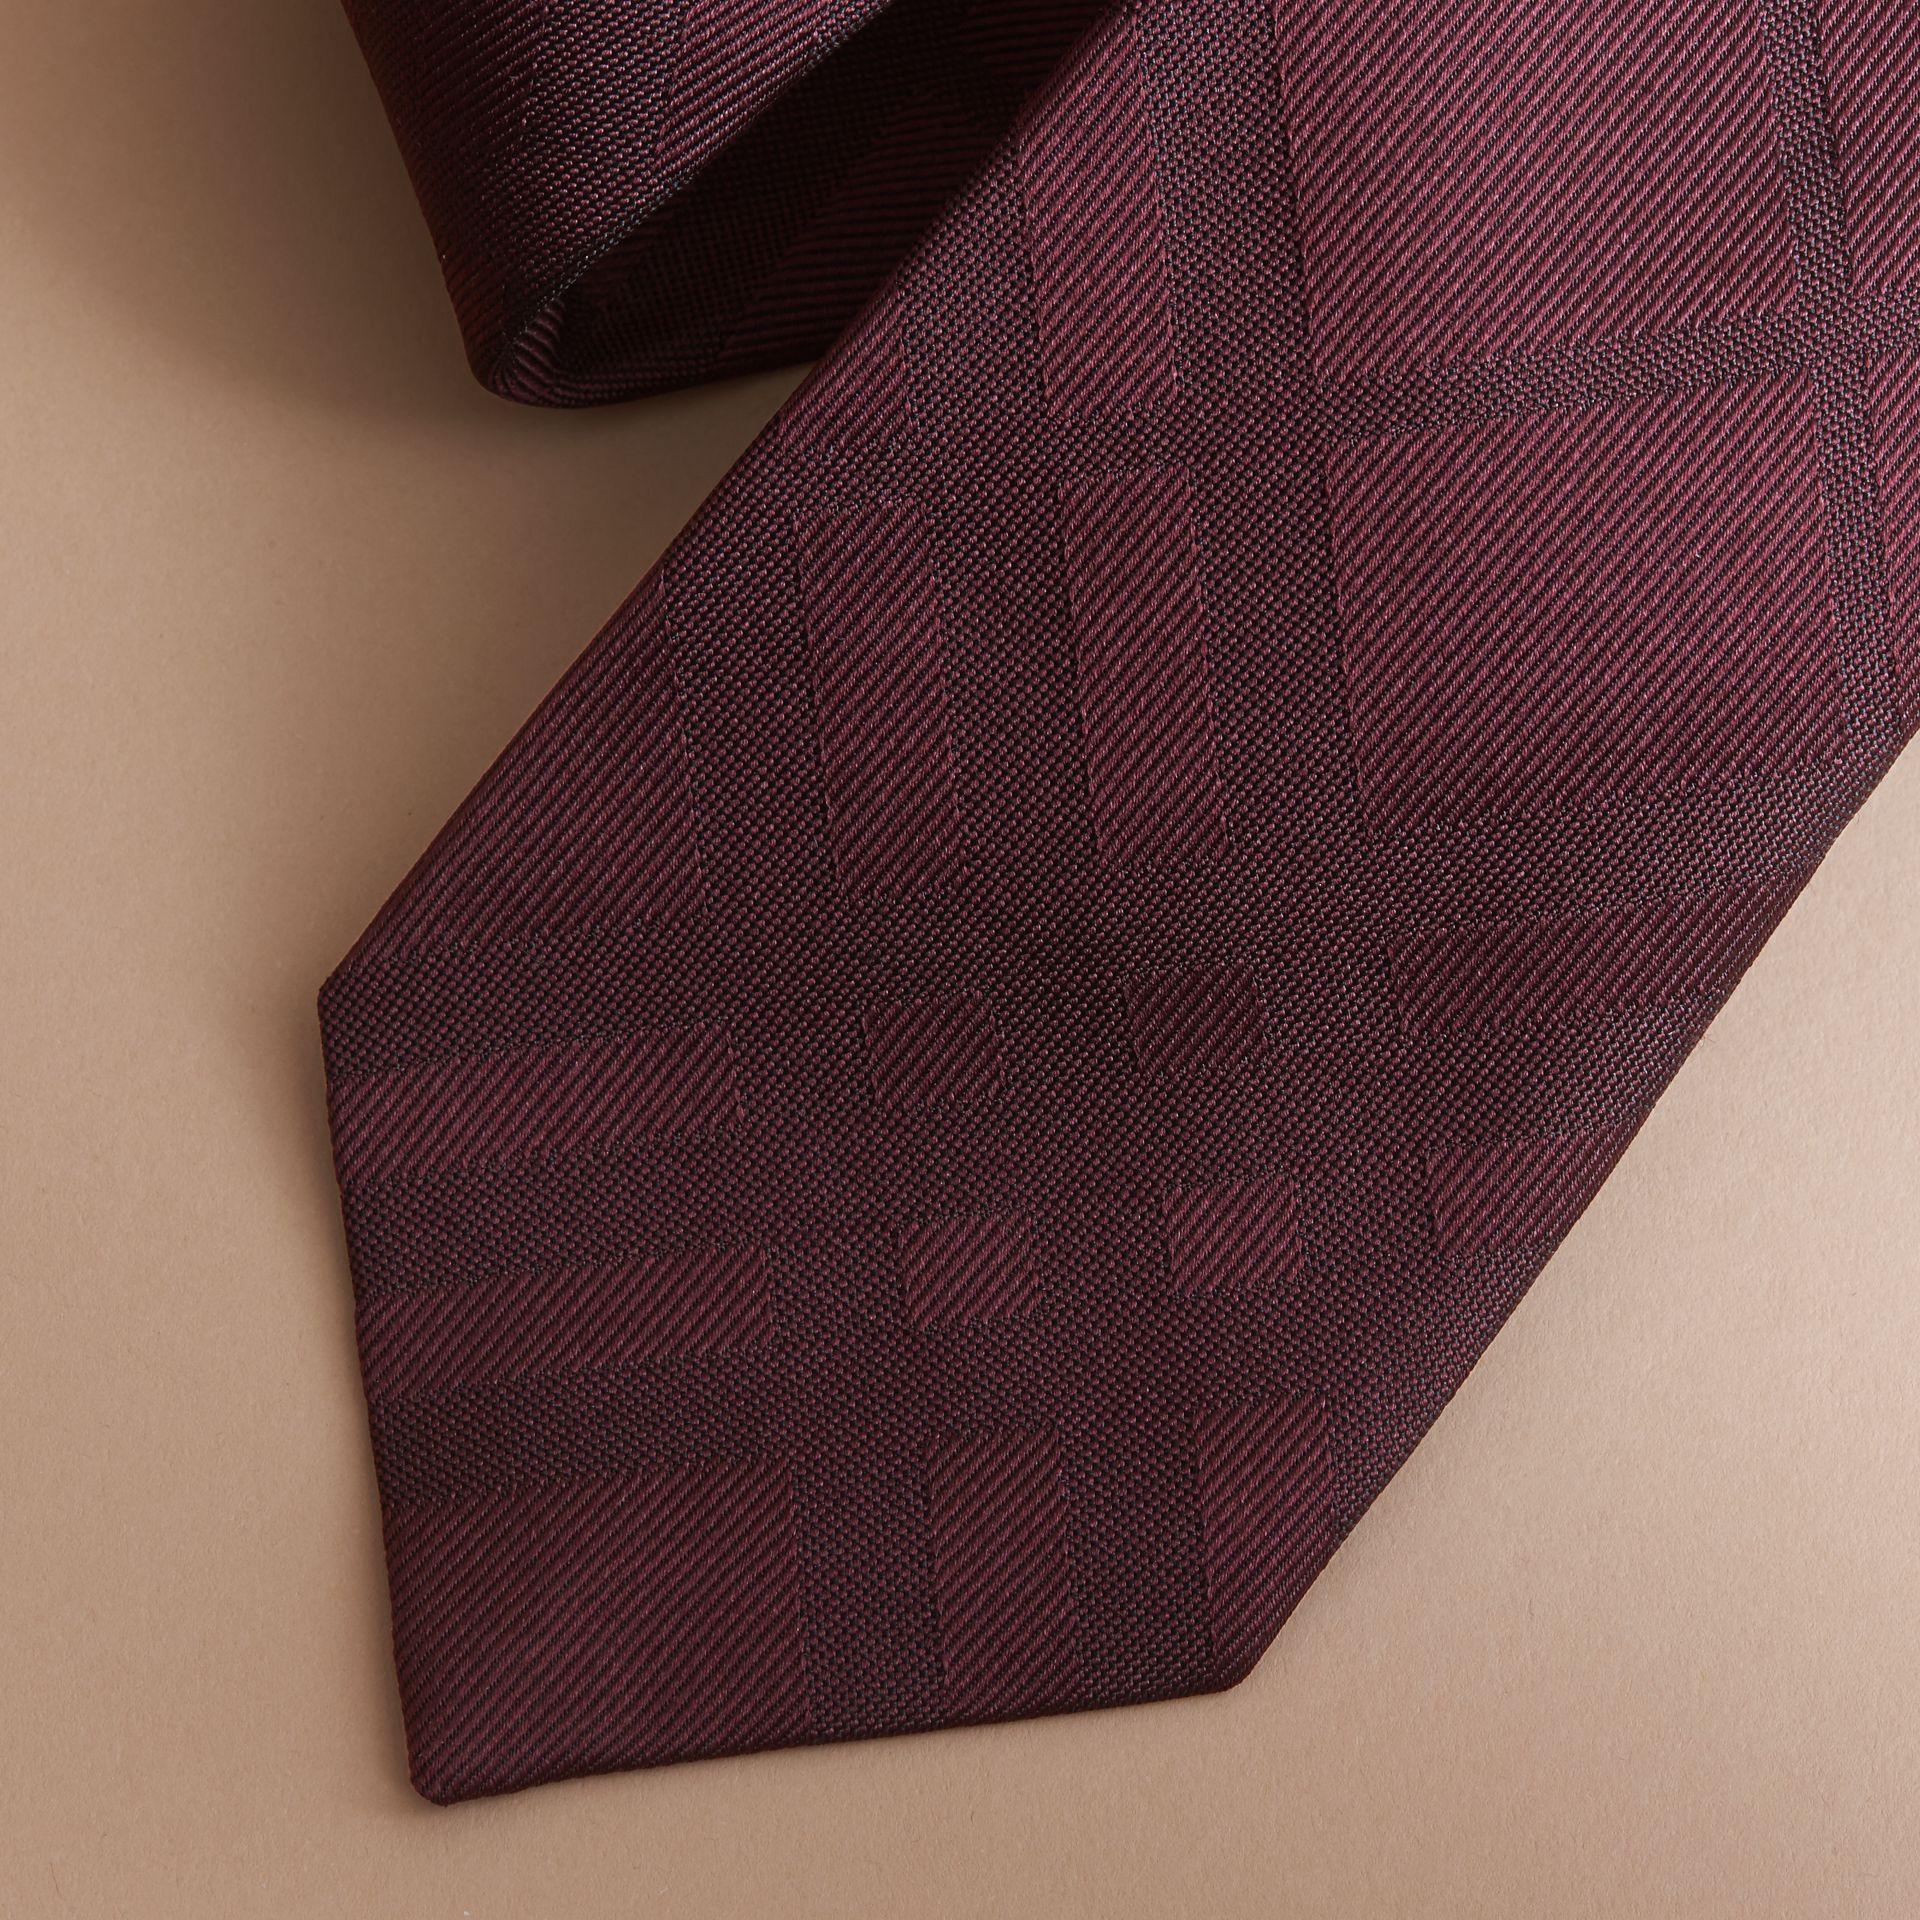 Classic Cut Check Silk Jacquard Tie in Deep Claret - Men | Burberry United Kingdom - gallery image 1